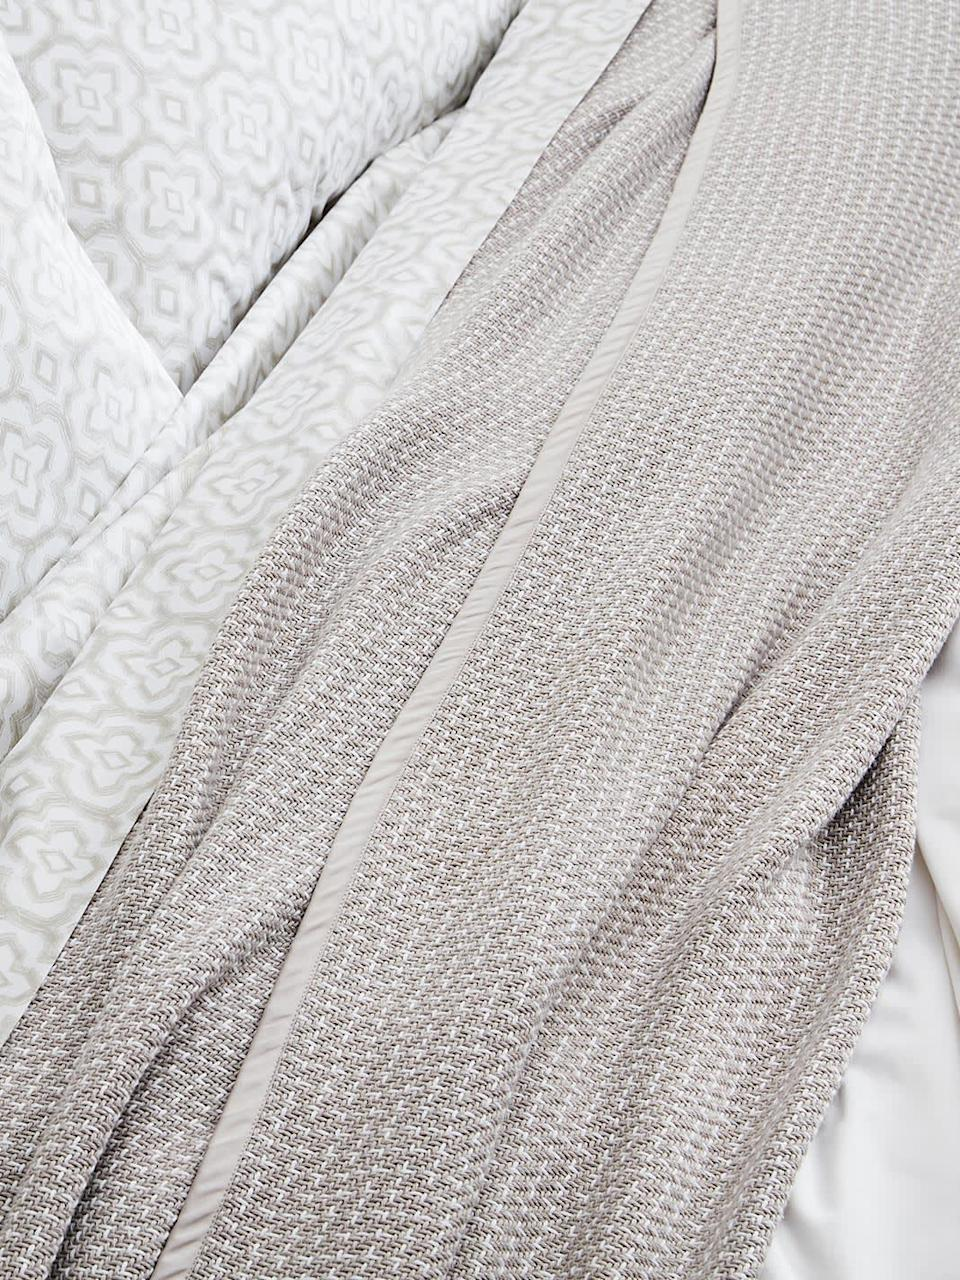 "<h2>Boll & Branch Pickstick Bed Blanket </h2><br>This bed-sized blanket is woven from the label's thickest and coziest 100% organic cotton yarn with a contrasting stitch. <br><br><strong>Comfort Critics Say:</strong> ""Lightweight enough for summer but still cozy too. It fits our king-sized bed beautifully and I can't wait to get a duvet set to complete the look."" - <em>Jennifer P.</em><br><br><strong><em><a href=""https://www.bollandbranch.com/pages/bedding"" rel=""nofollow noopener"" target=""_blank"" data-ylk=""slk:Shop Boll & Branch"" class=""link rapid-noclick-resp"">Shop Boll & Branch</a></em></strong> <br><br><strong>Boll And Branch</strong> Pickstitch Bed Blanket, $, available at <a href=""https://go.skimresources.com/?id=30283X879131&url=https%3A%2F%2Ffave.co%2F37DK1BT"" rel=""nofollow noopener"" target=""_blank"" data-ylk=""slk:Boll And Branch"" class=""link rapid-noclick-resp"">Boll And Branch</a>"